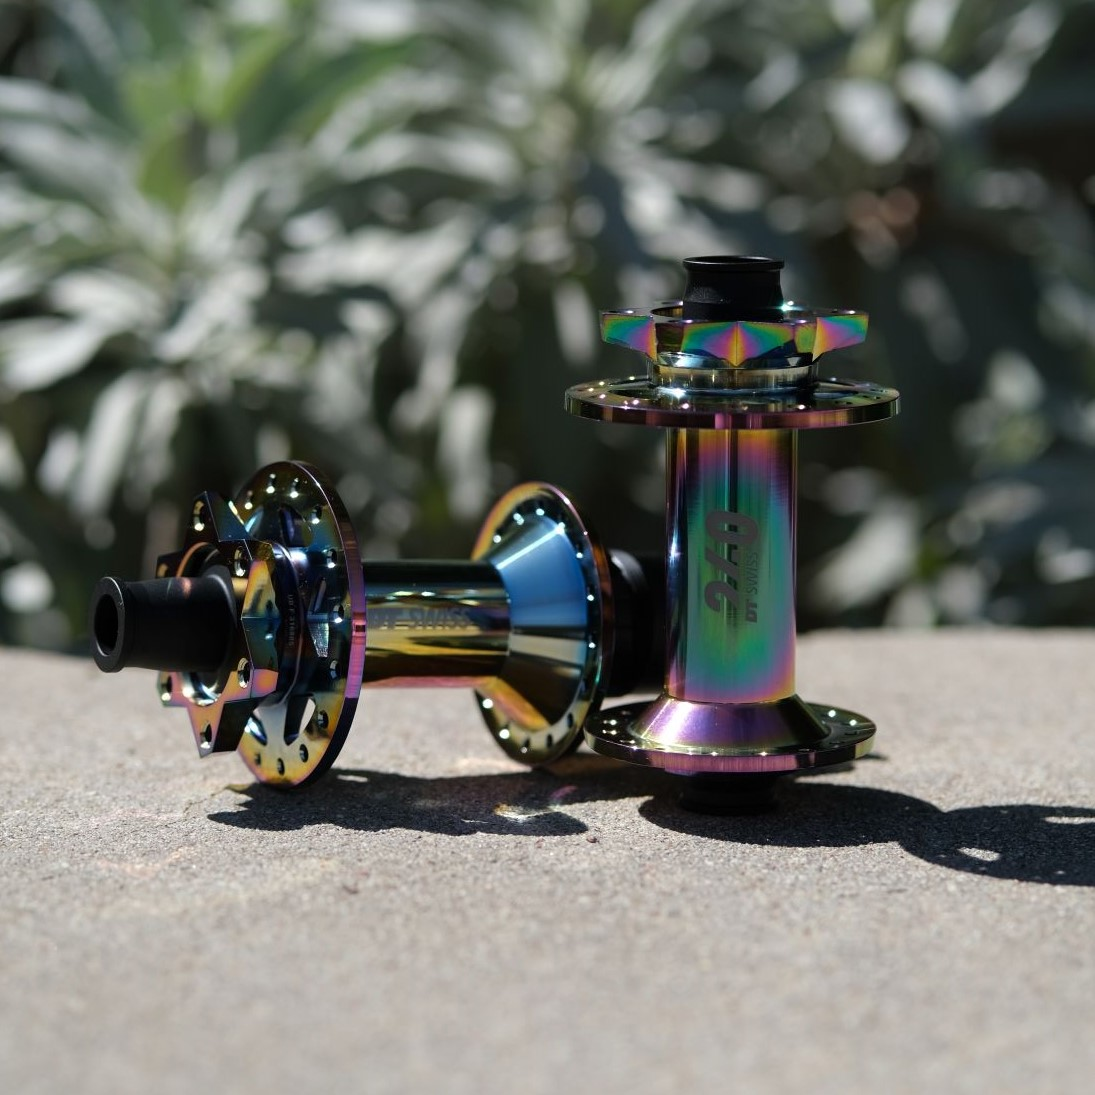 A pair of DT Swiss hubs with an oil-slick finish sit on a bench outside